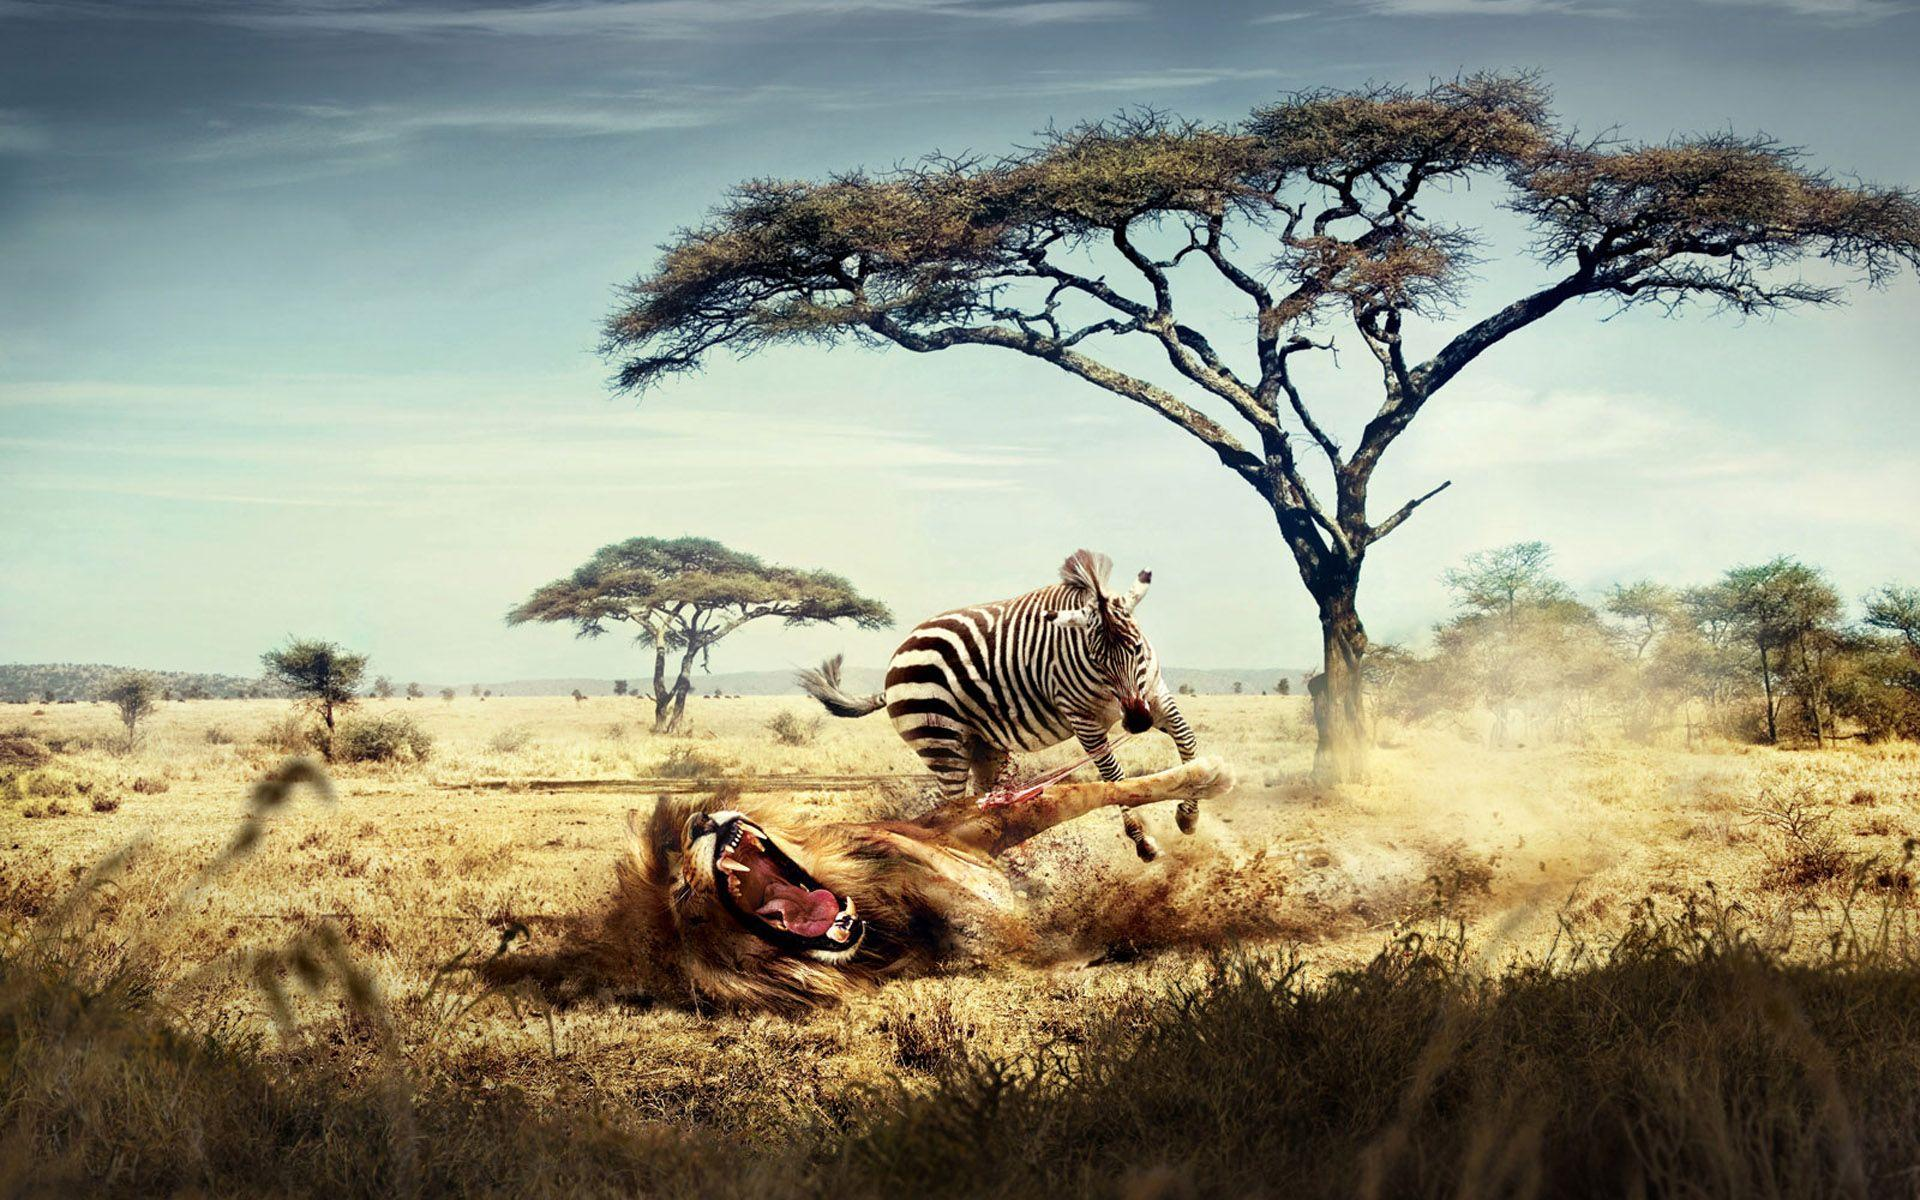 Wild Lion Zebra Chase Wallpapers | HD Wallpapers